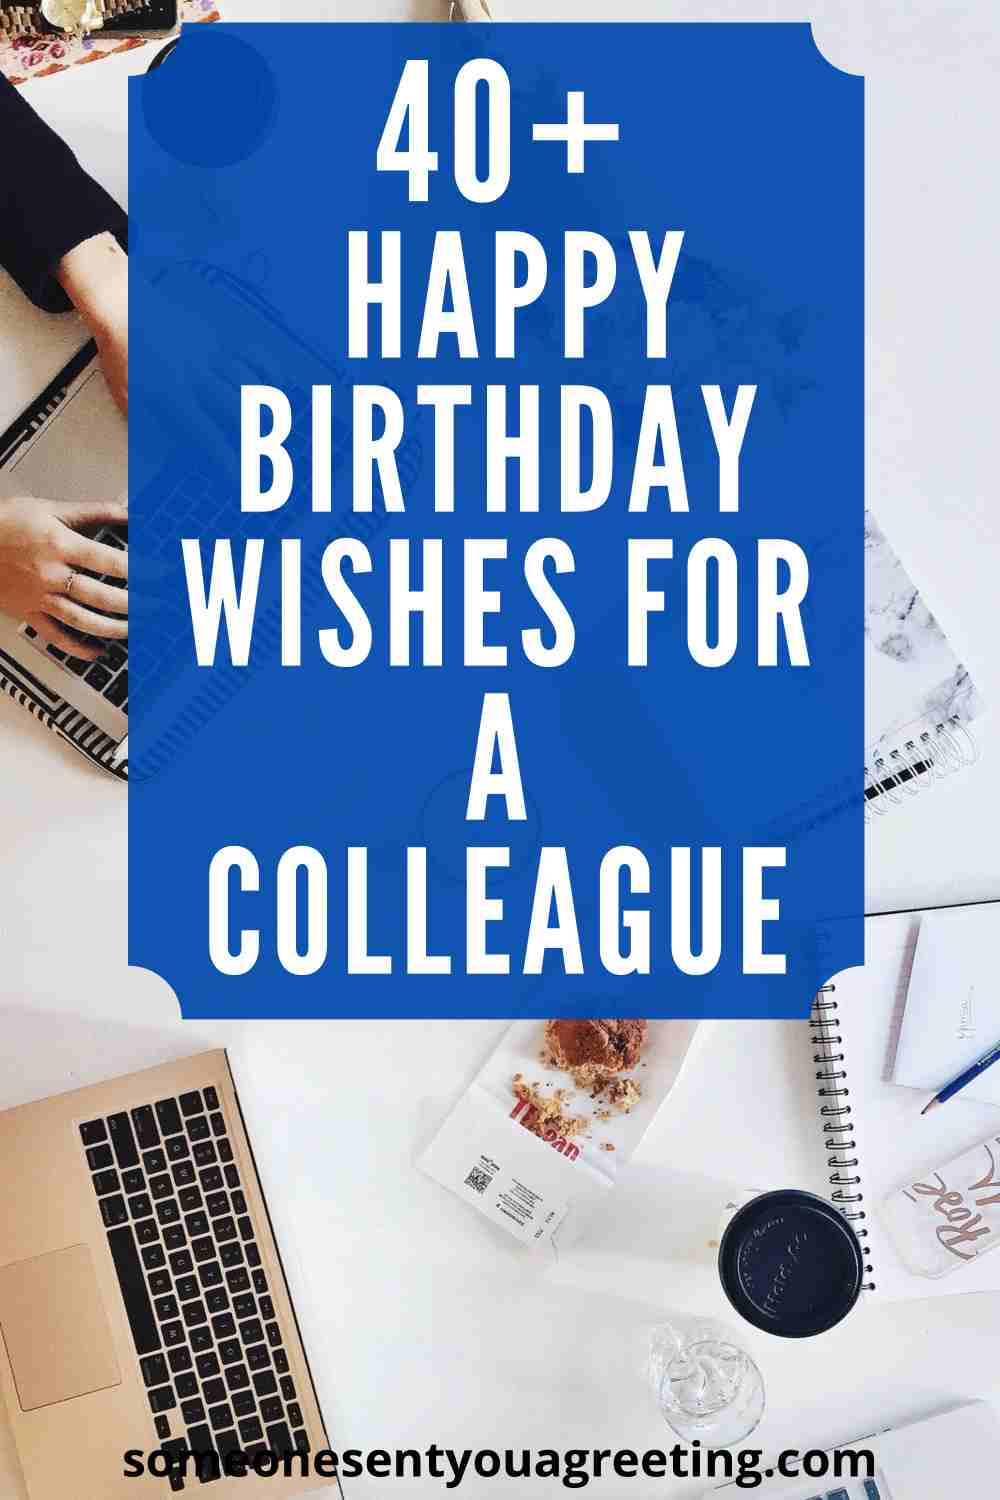 happy birthday colleague wishes